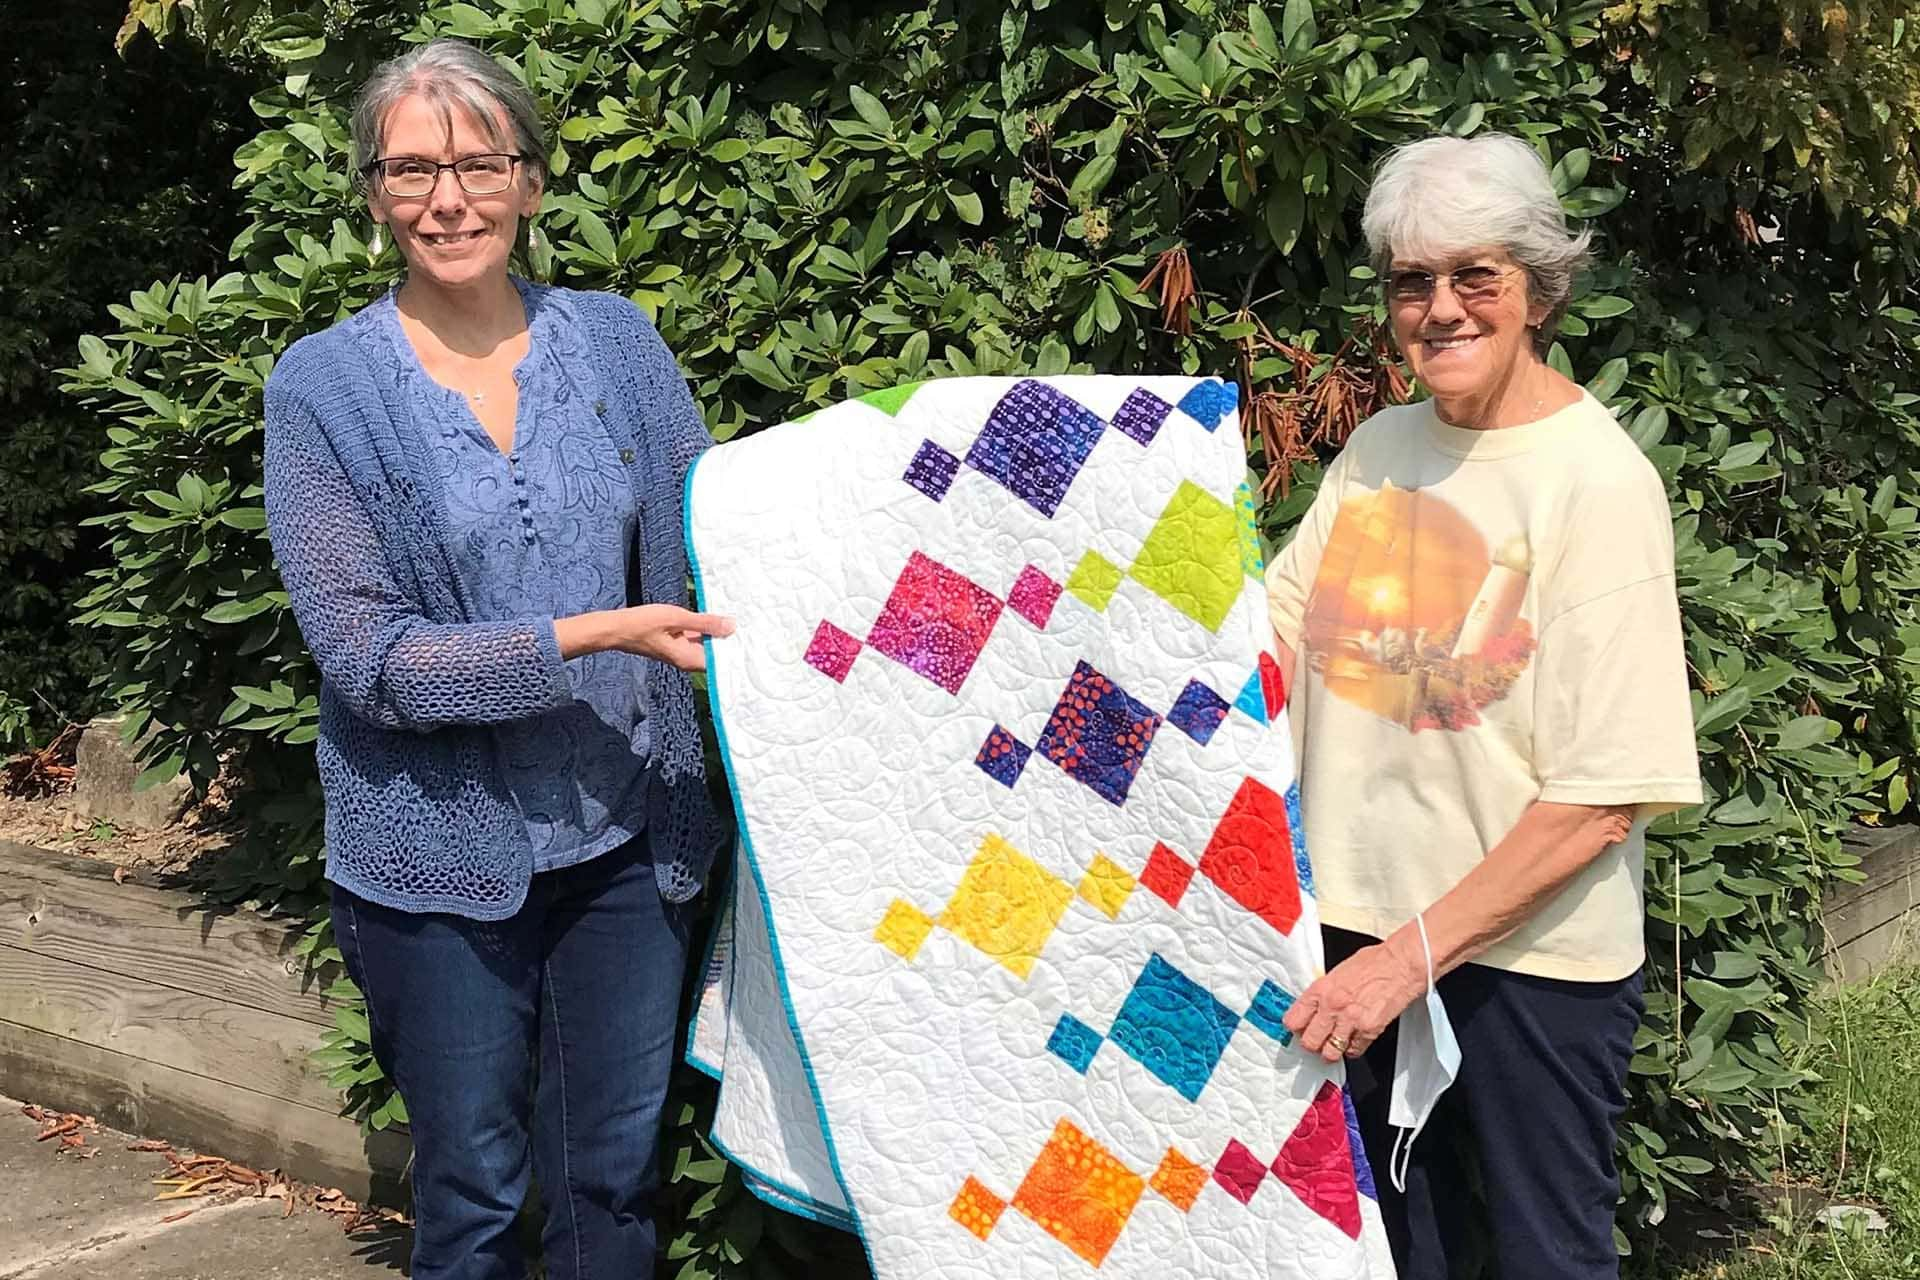 Quilters at Heart Quilt Guild raises $1,000 for Celebrate Recovery